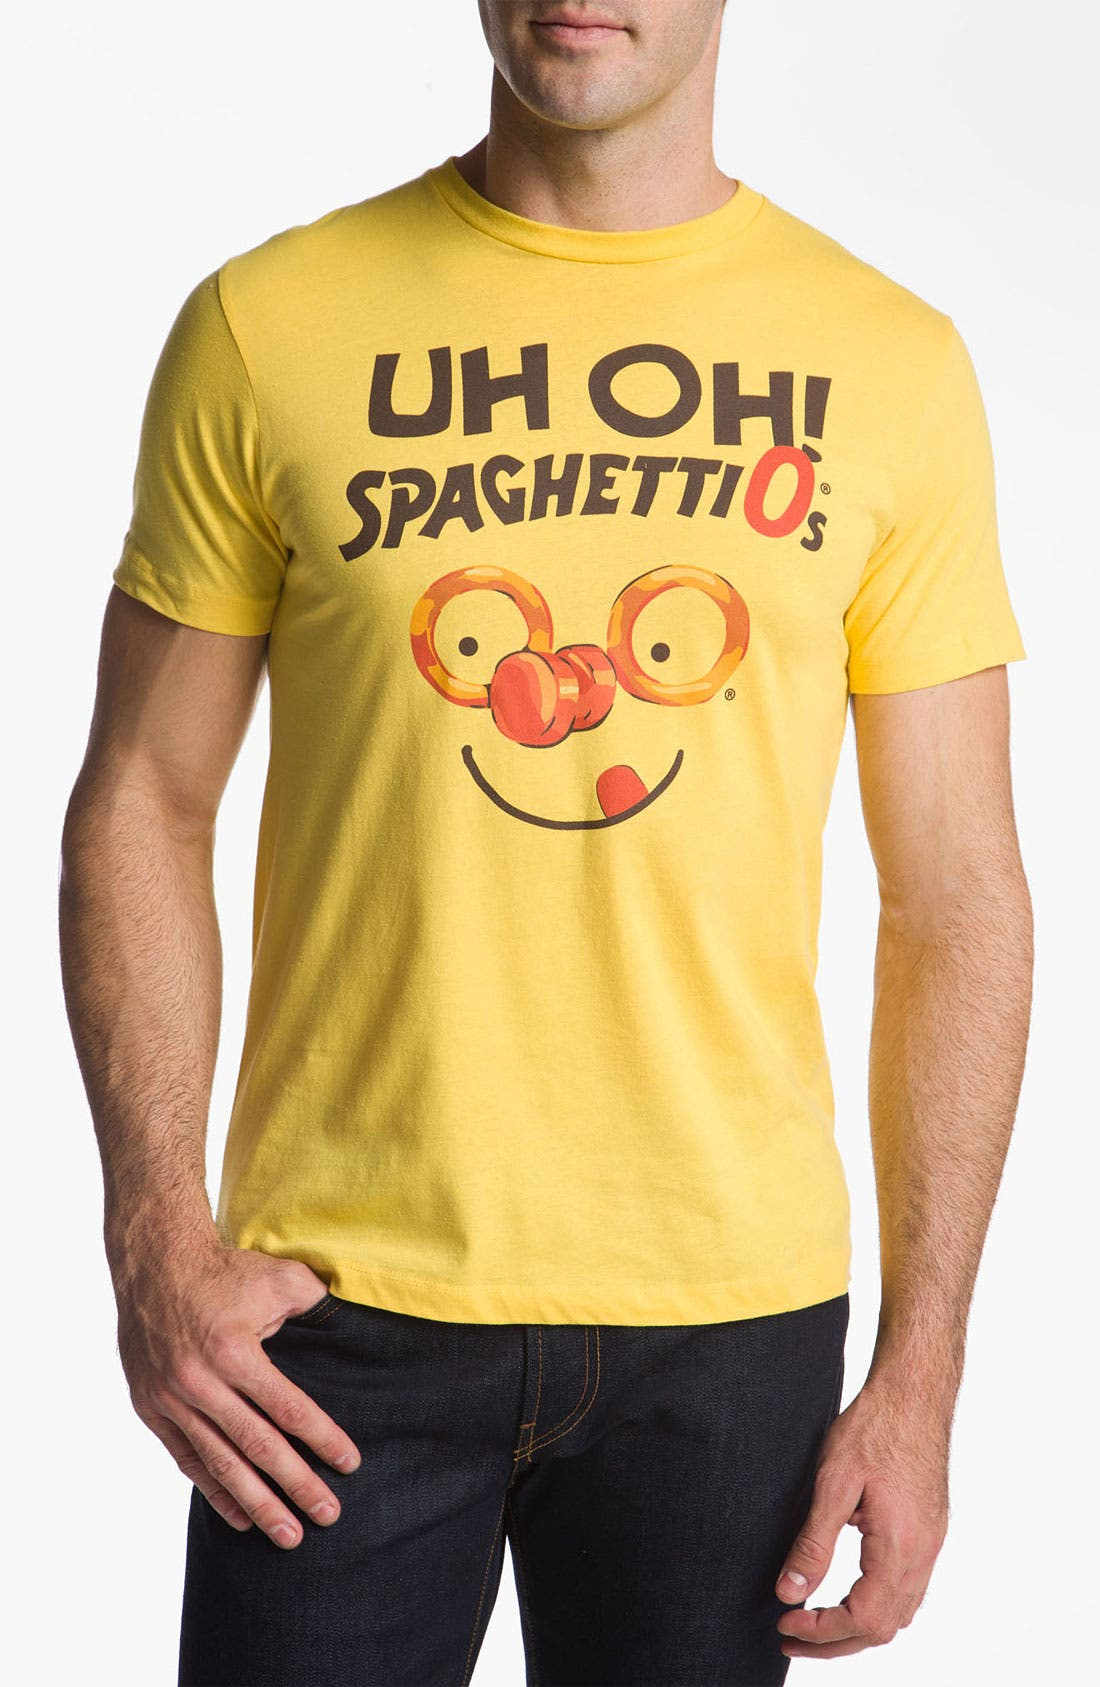 Alternate Image 1 Selected - Topless 'Uh Oh! Spaghetti-Os' T-Shirt